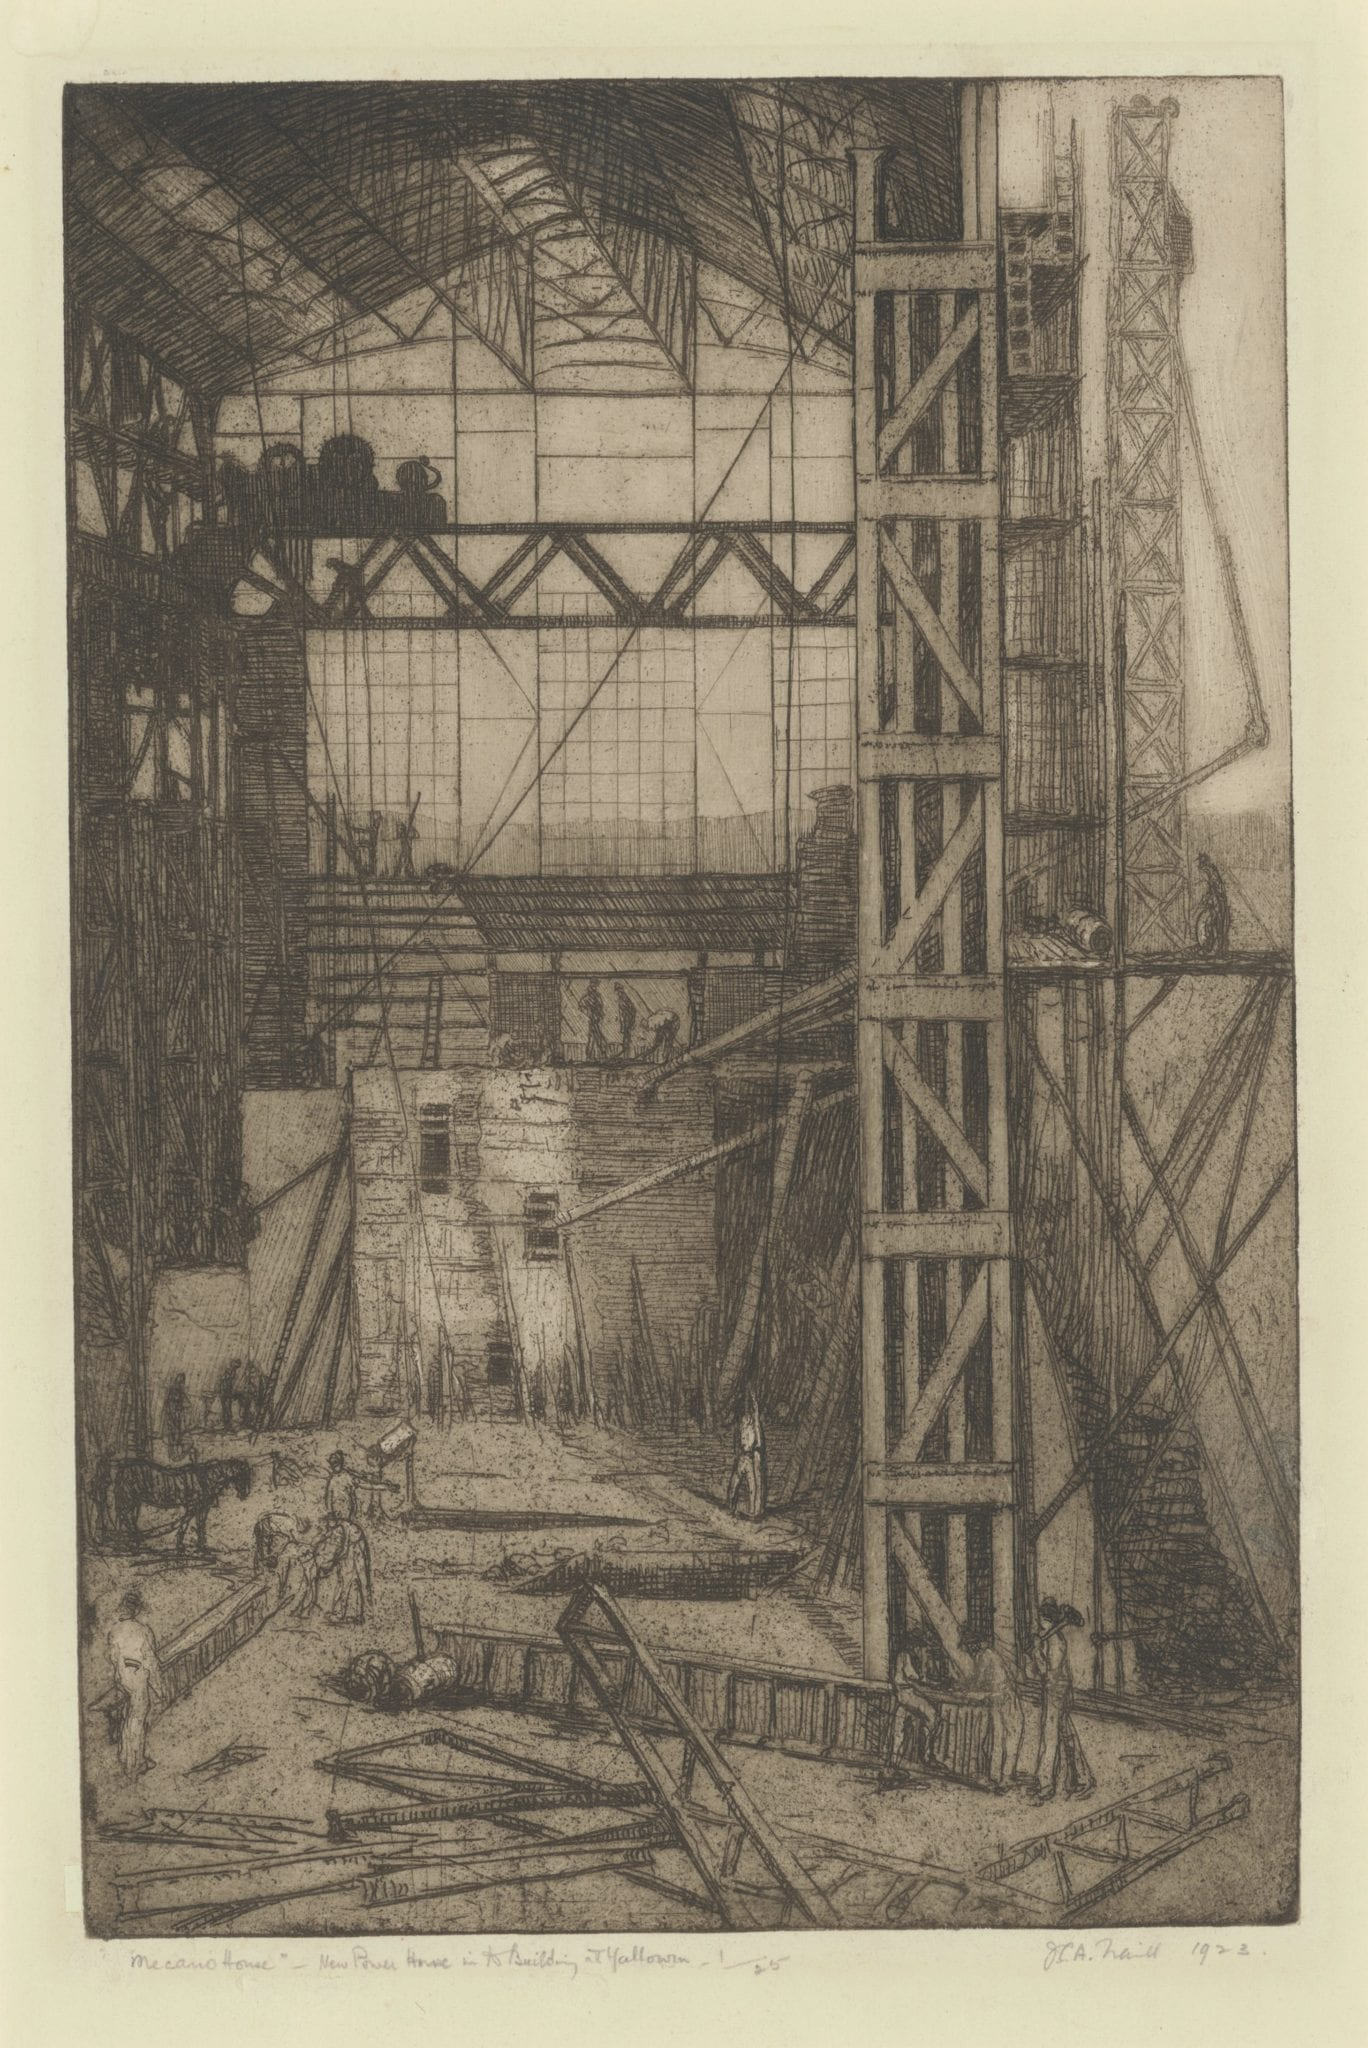 Jessie Traill, Meccano House, 1923. Drypoint etching, 34 x 23cm. Latrobe Regional Gallery Collection.